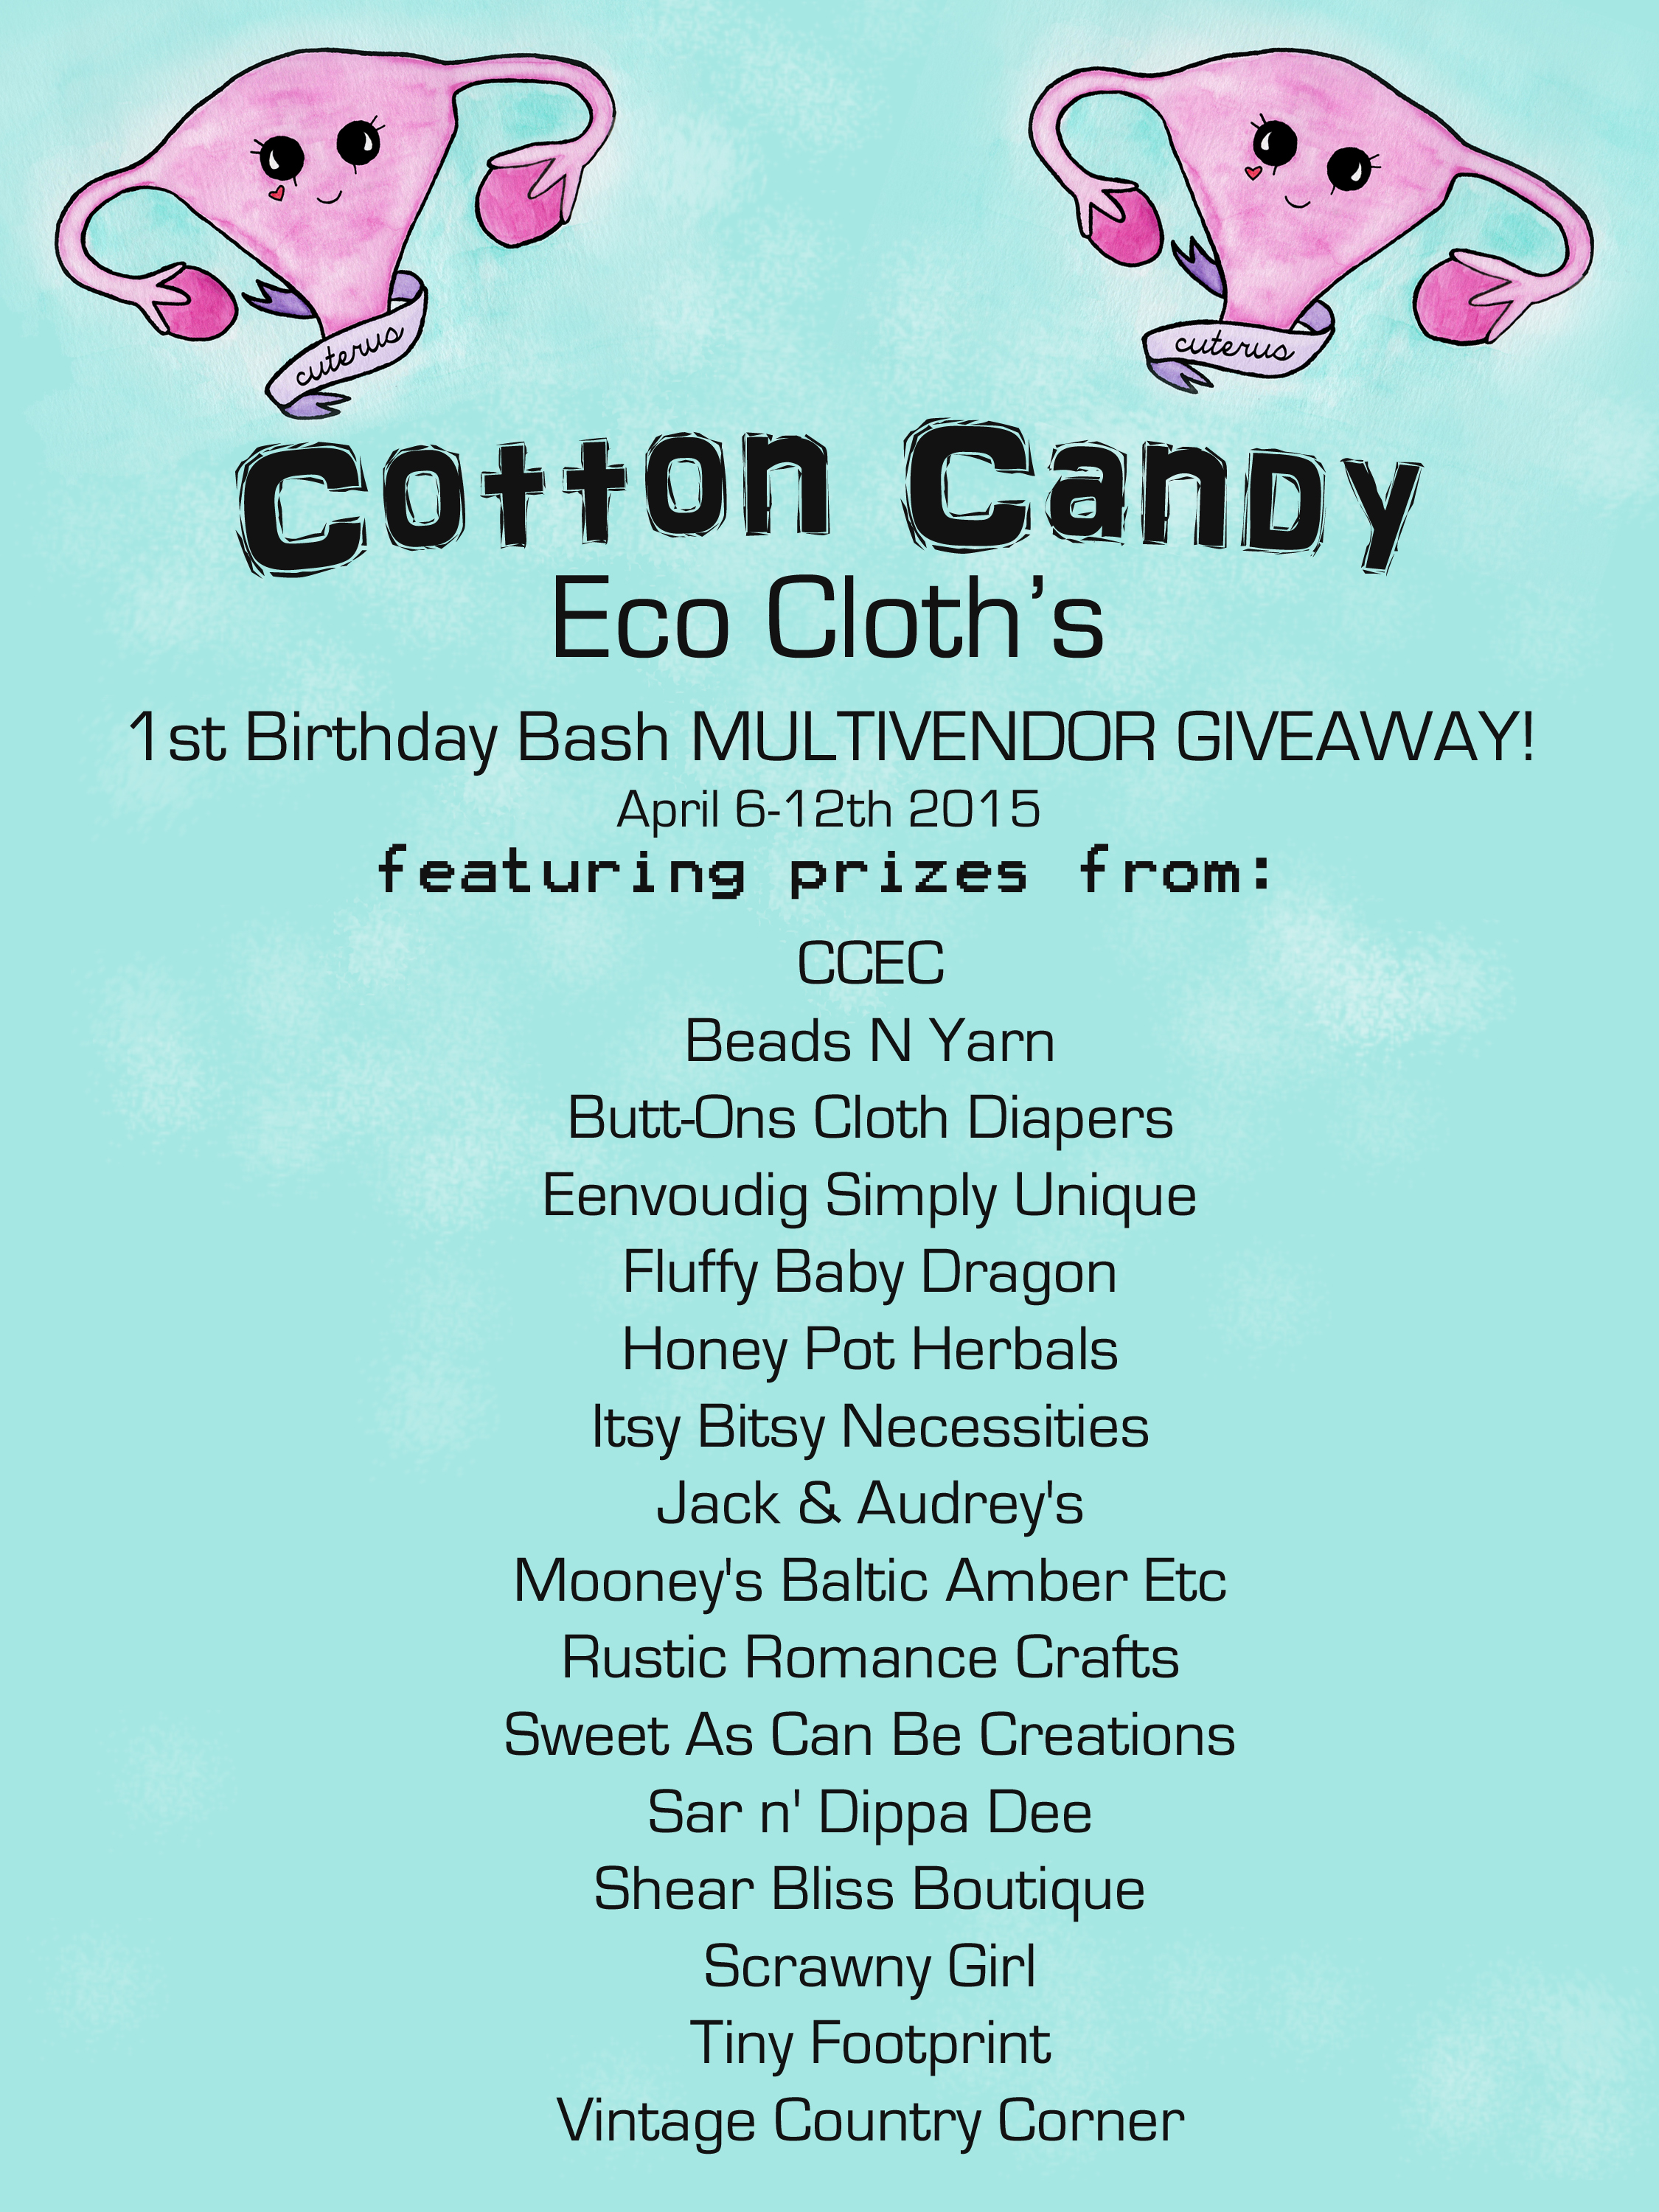 CCEC's 1st Birthday Bash Giveaway